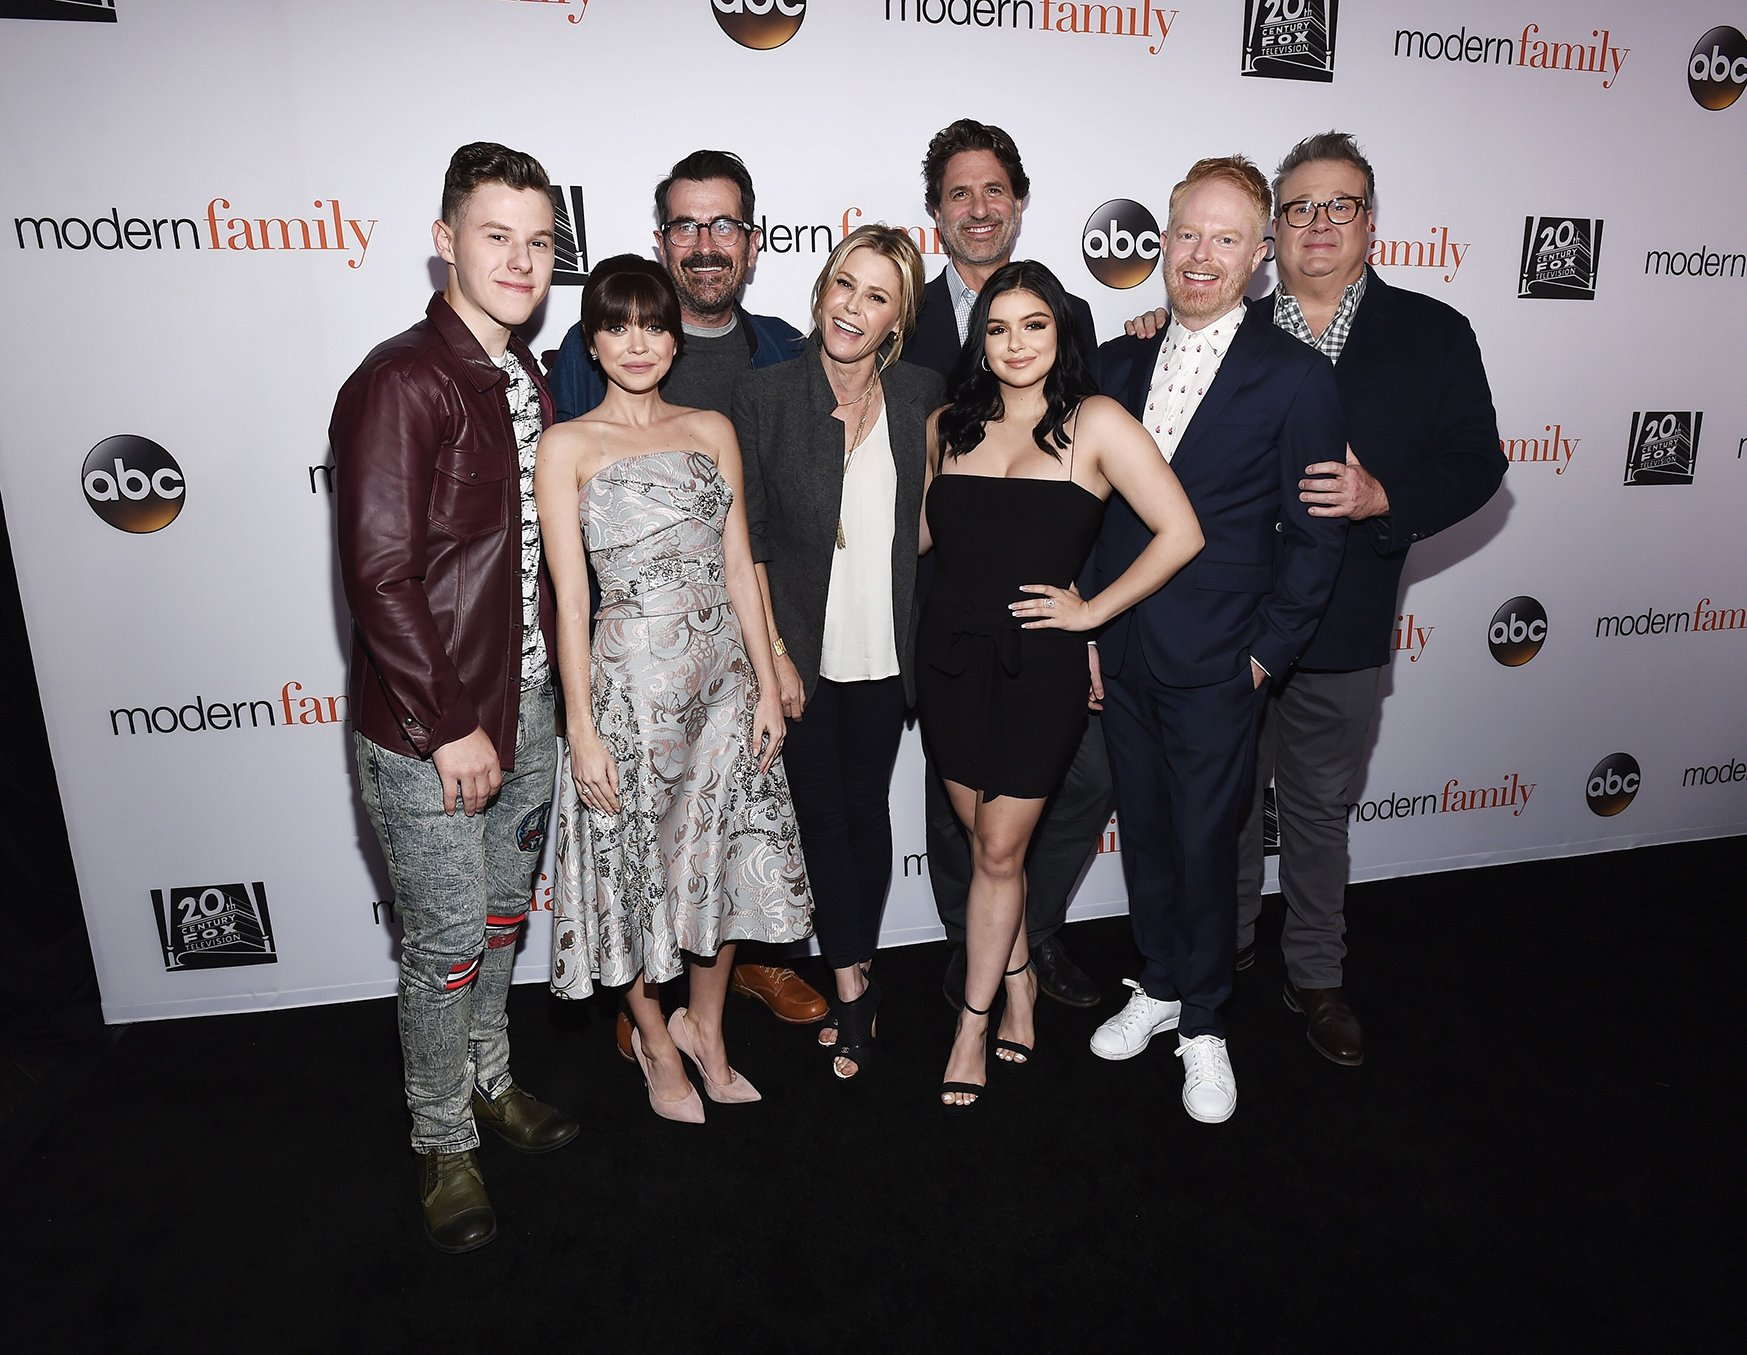 """Ty Burrels and the """"Modern Family"""" cast at a FYC Event in 2018 in Hollywood   Source: Getty Images"""